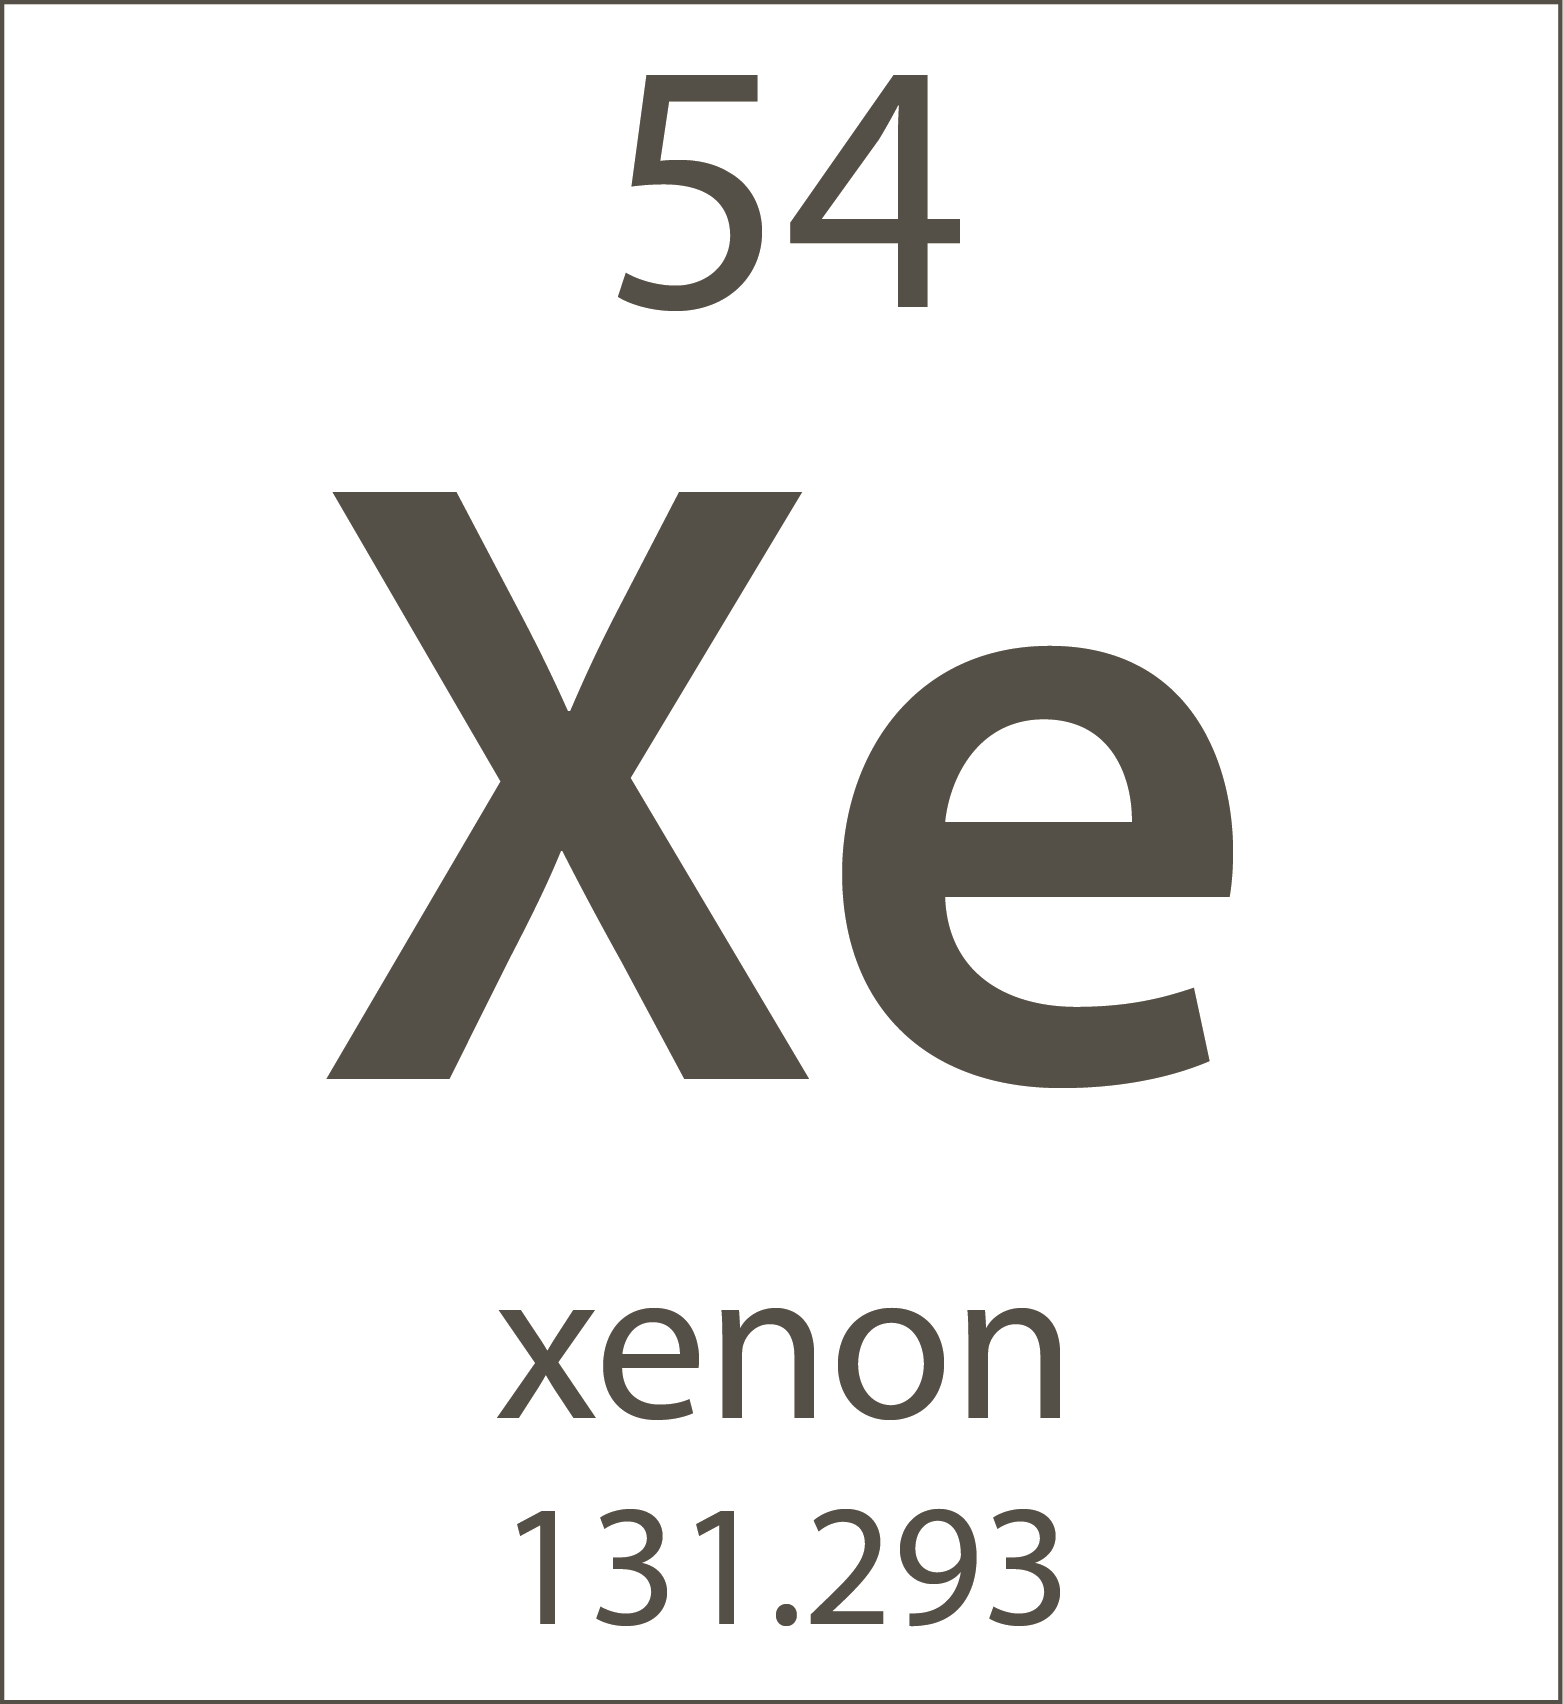 Xenon Element Periodic Table